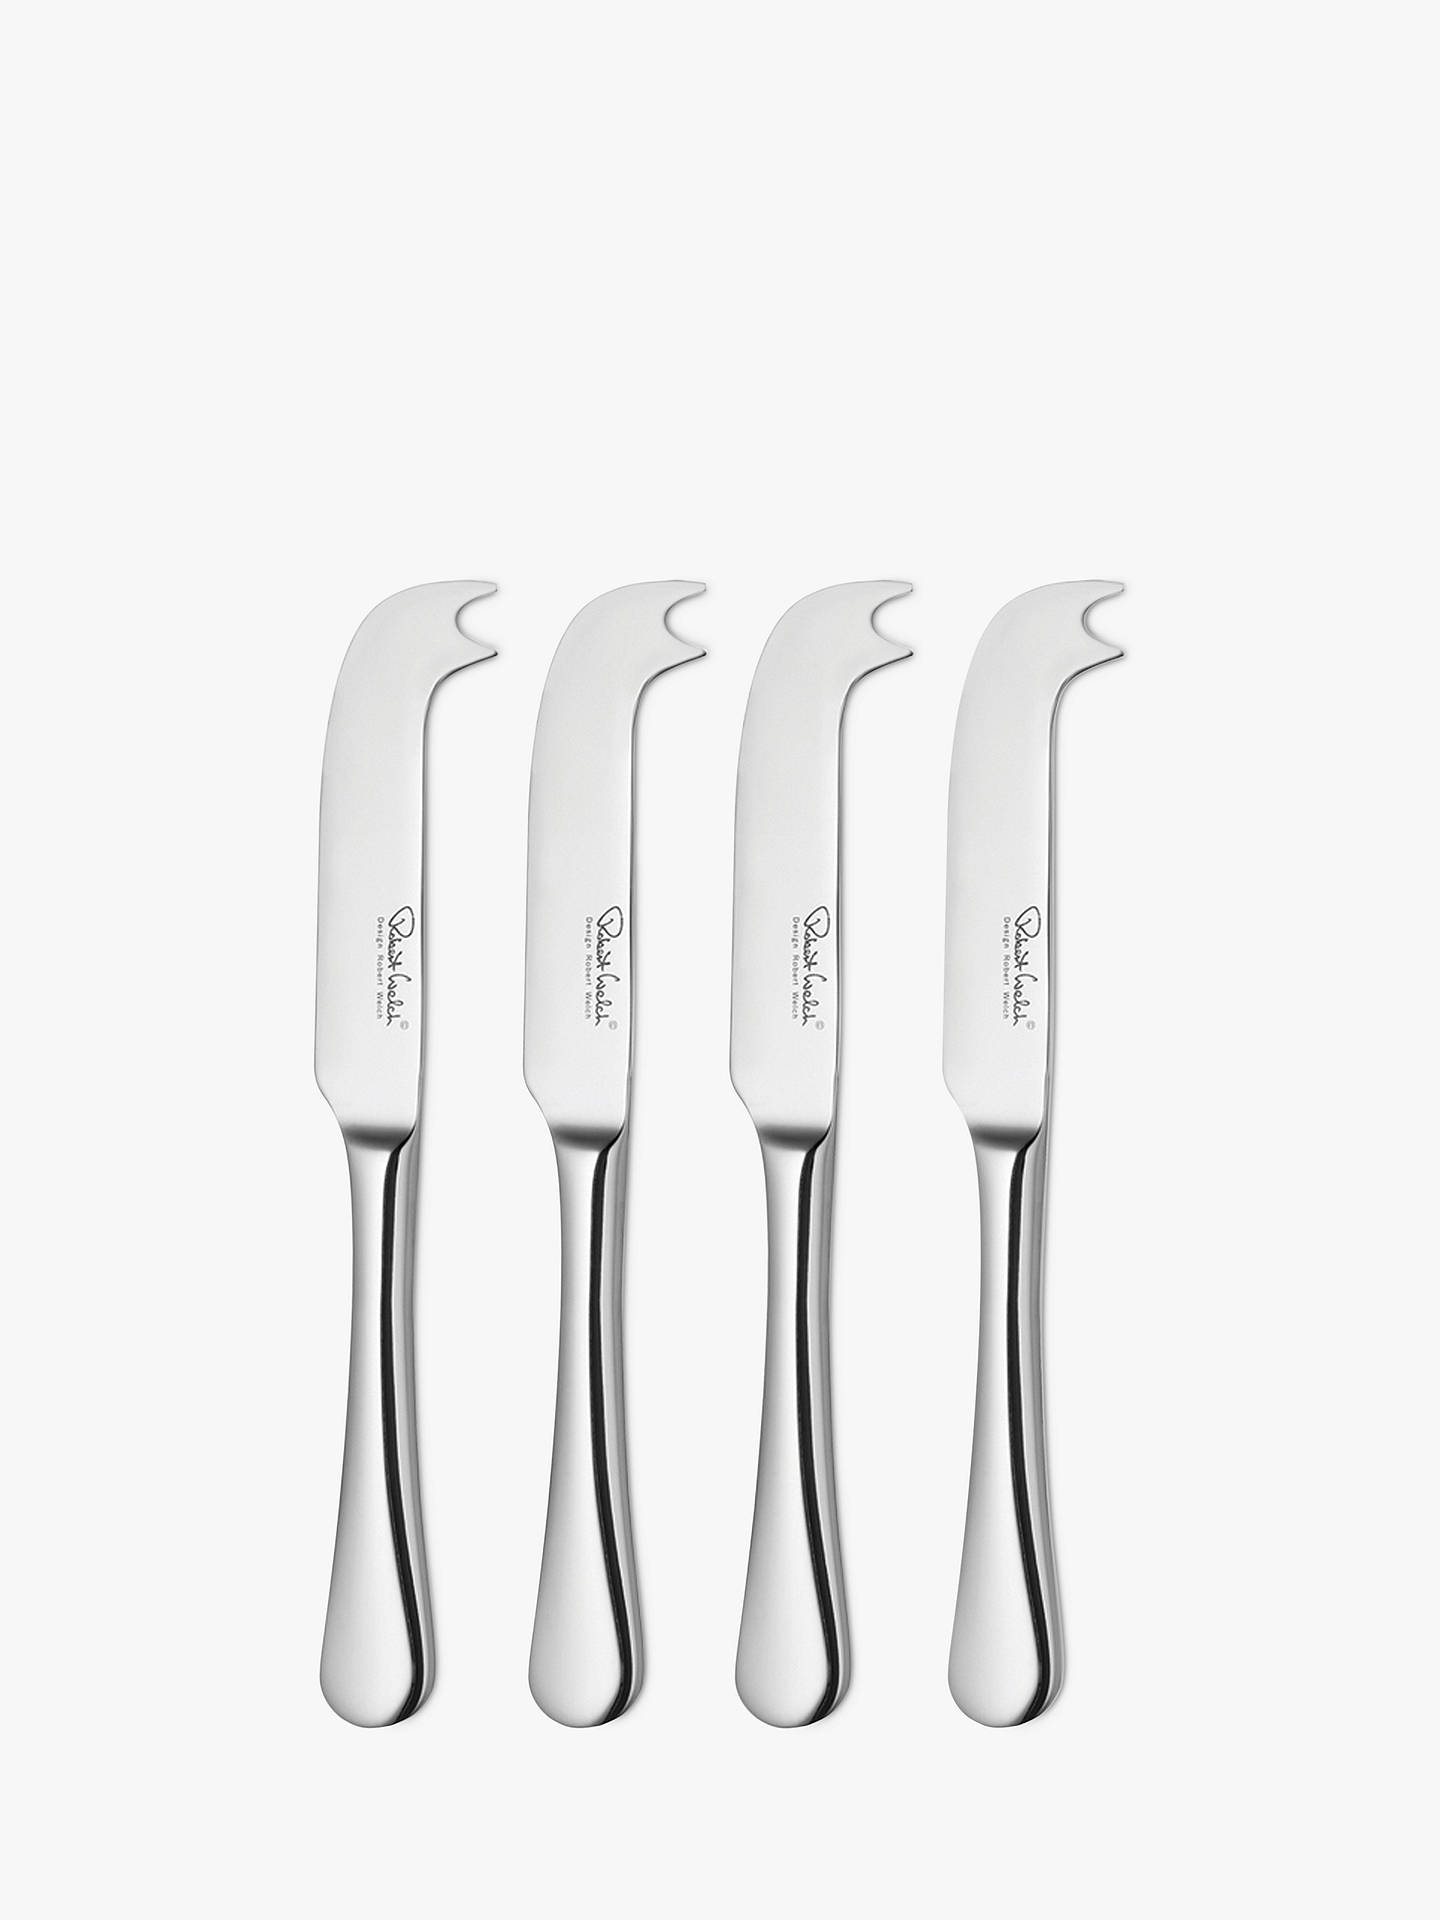 Buy Robert Welch Radford Small Cheese Knife Set, 4 Piece Online at johnlewis.com